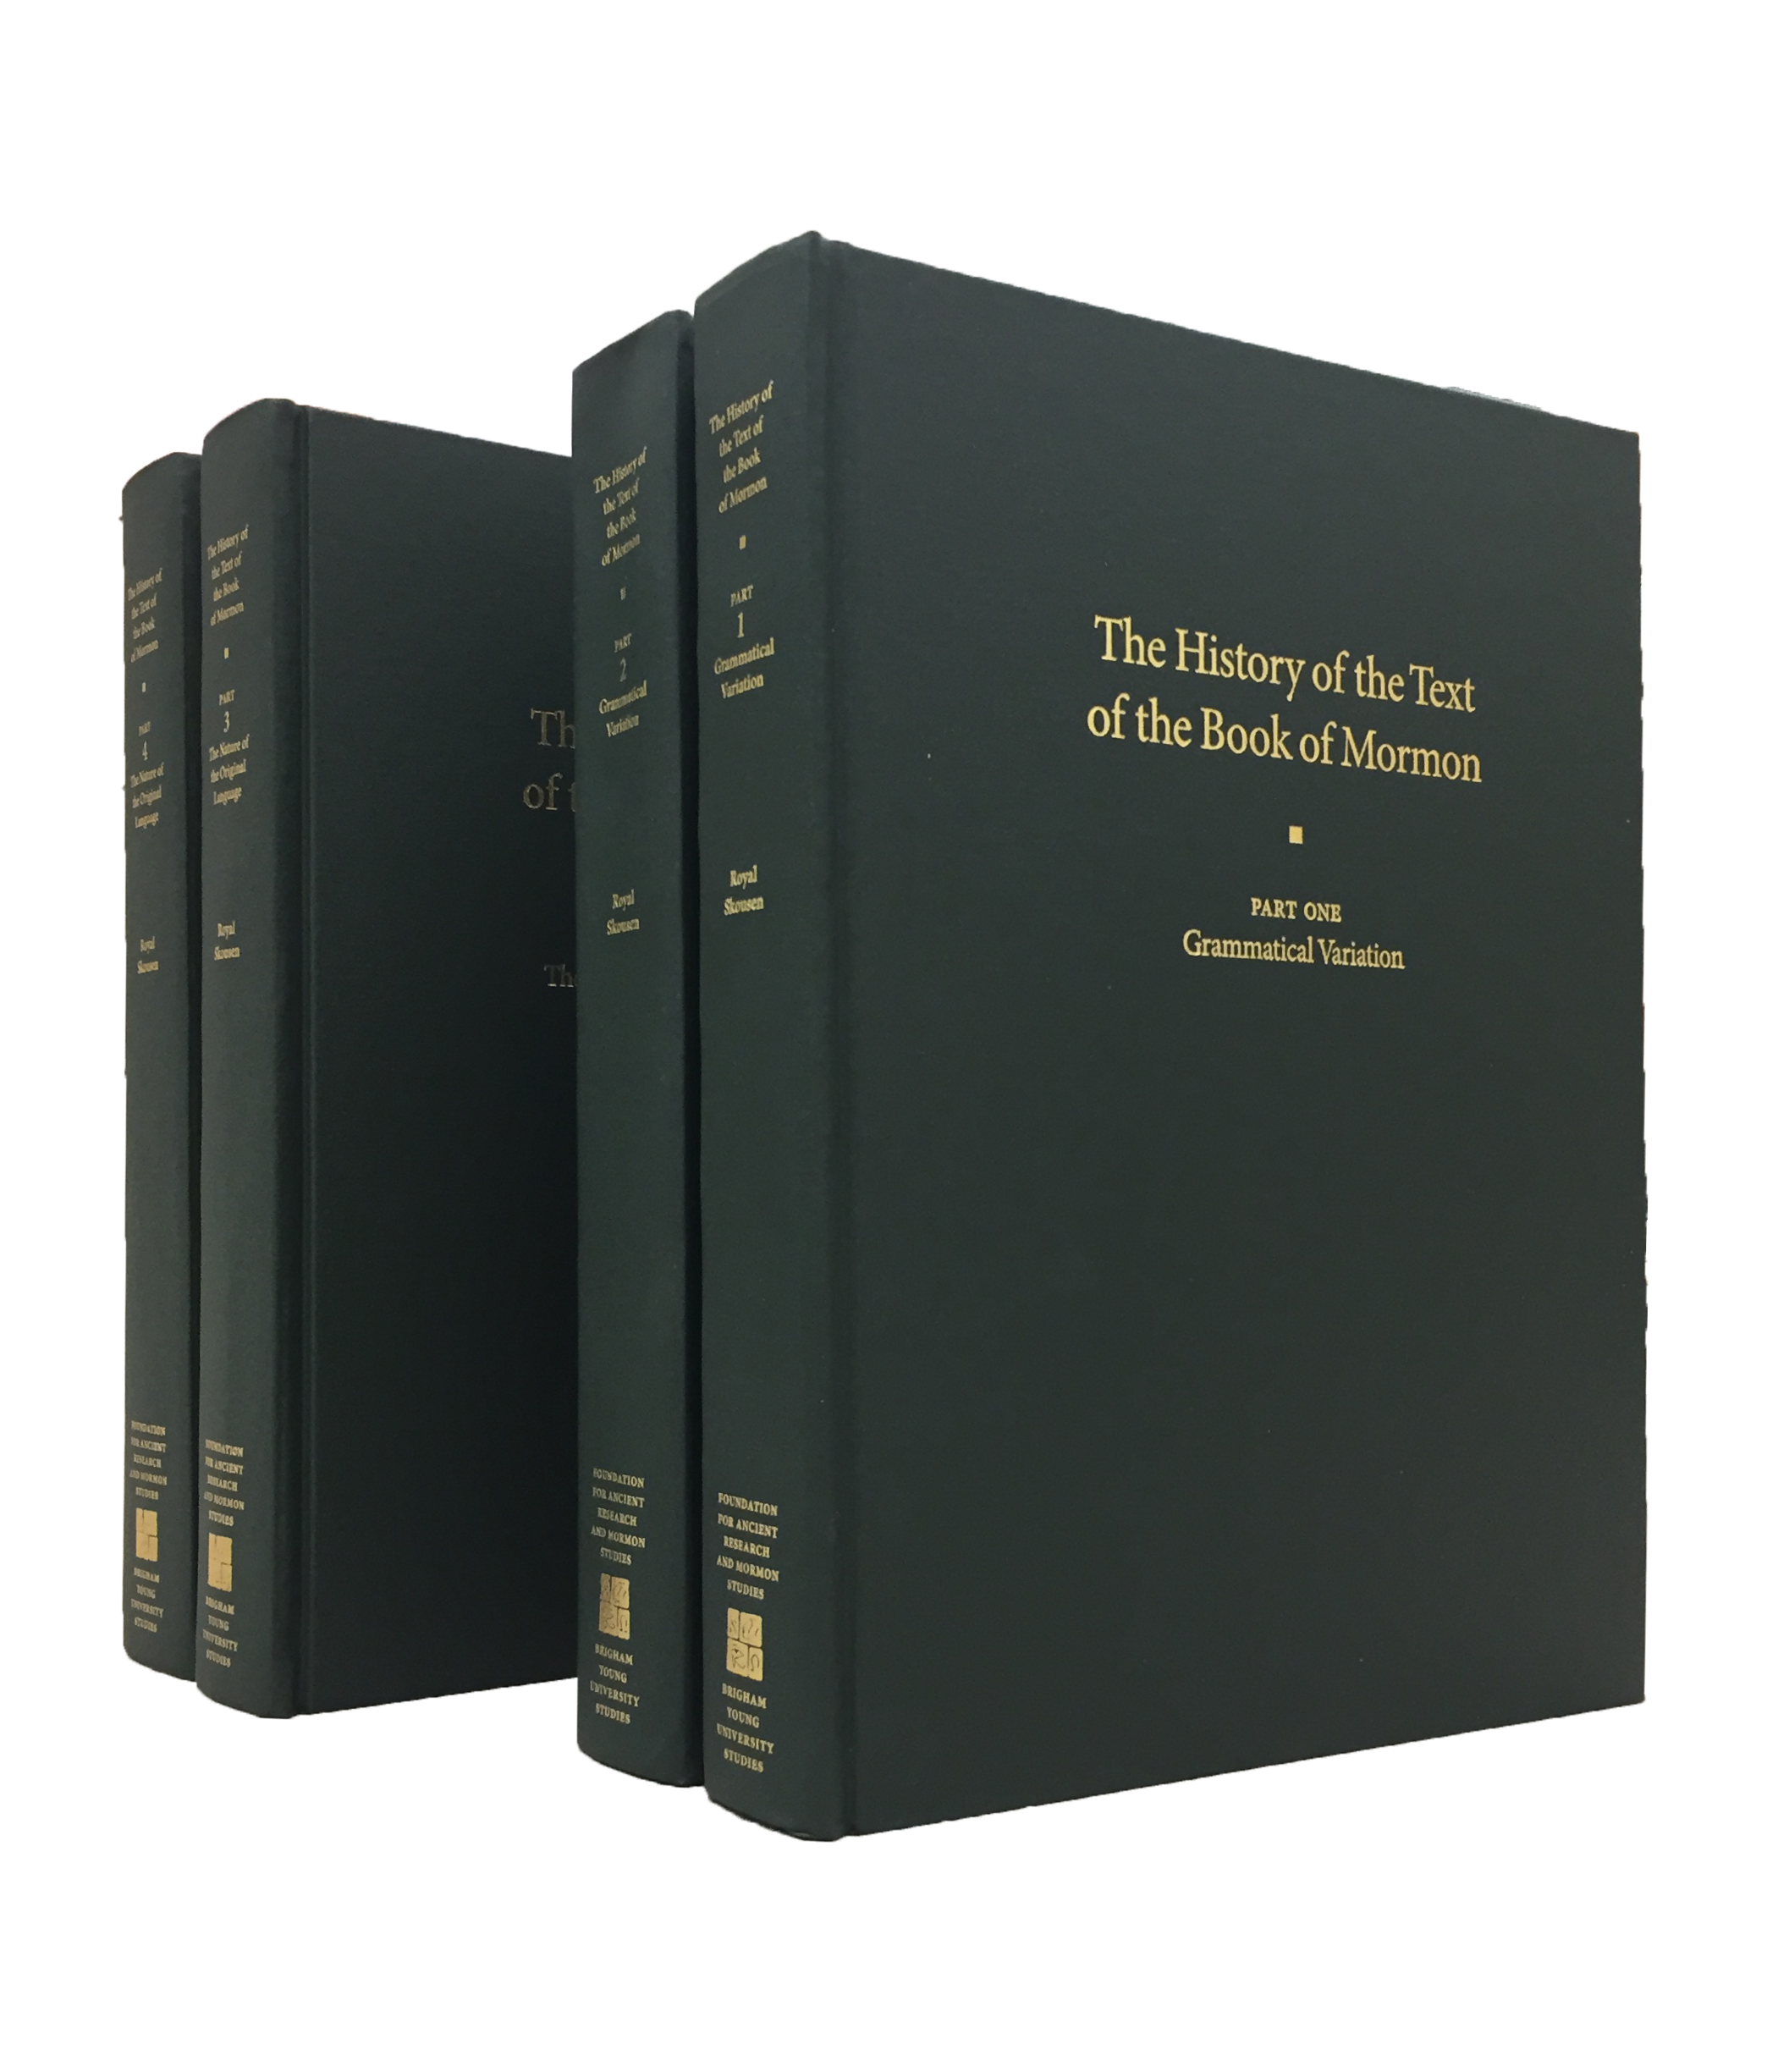 The History of the Text of the Book of Mormon